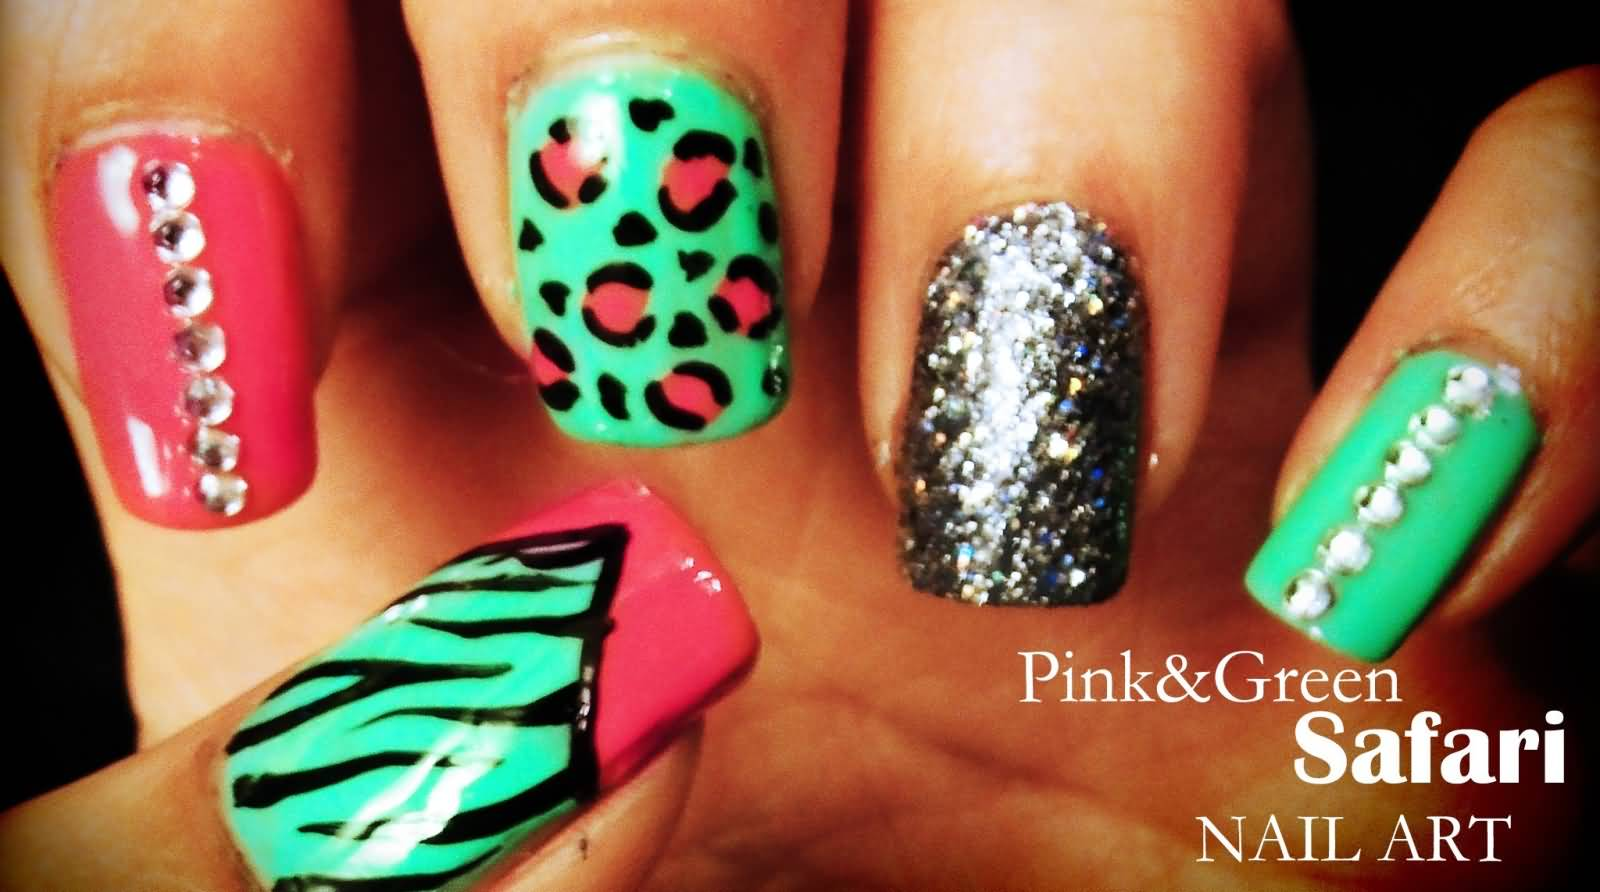 Nail art designs pink and green neon stones nail art design nail art designs pink and green pink and green animal print nail art prinsesfo Gallery